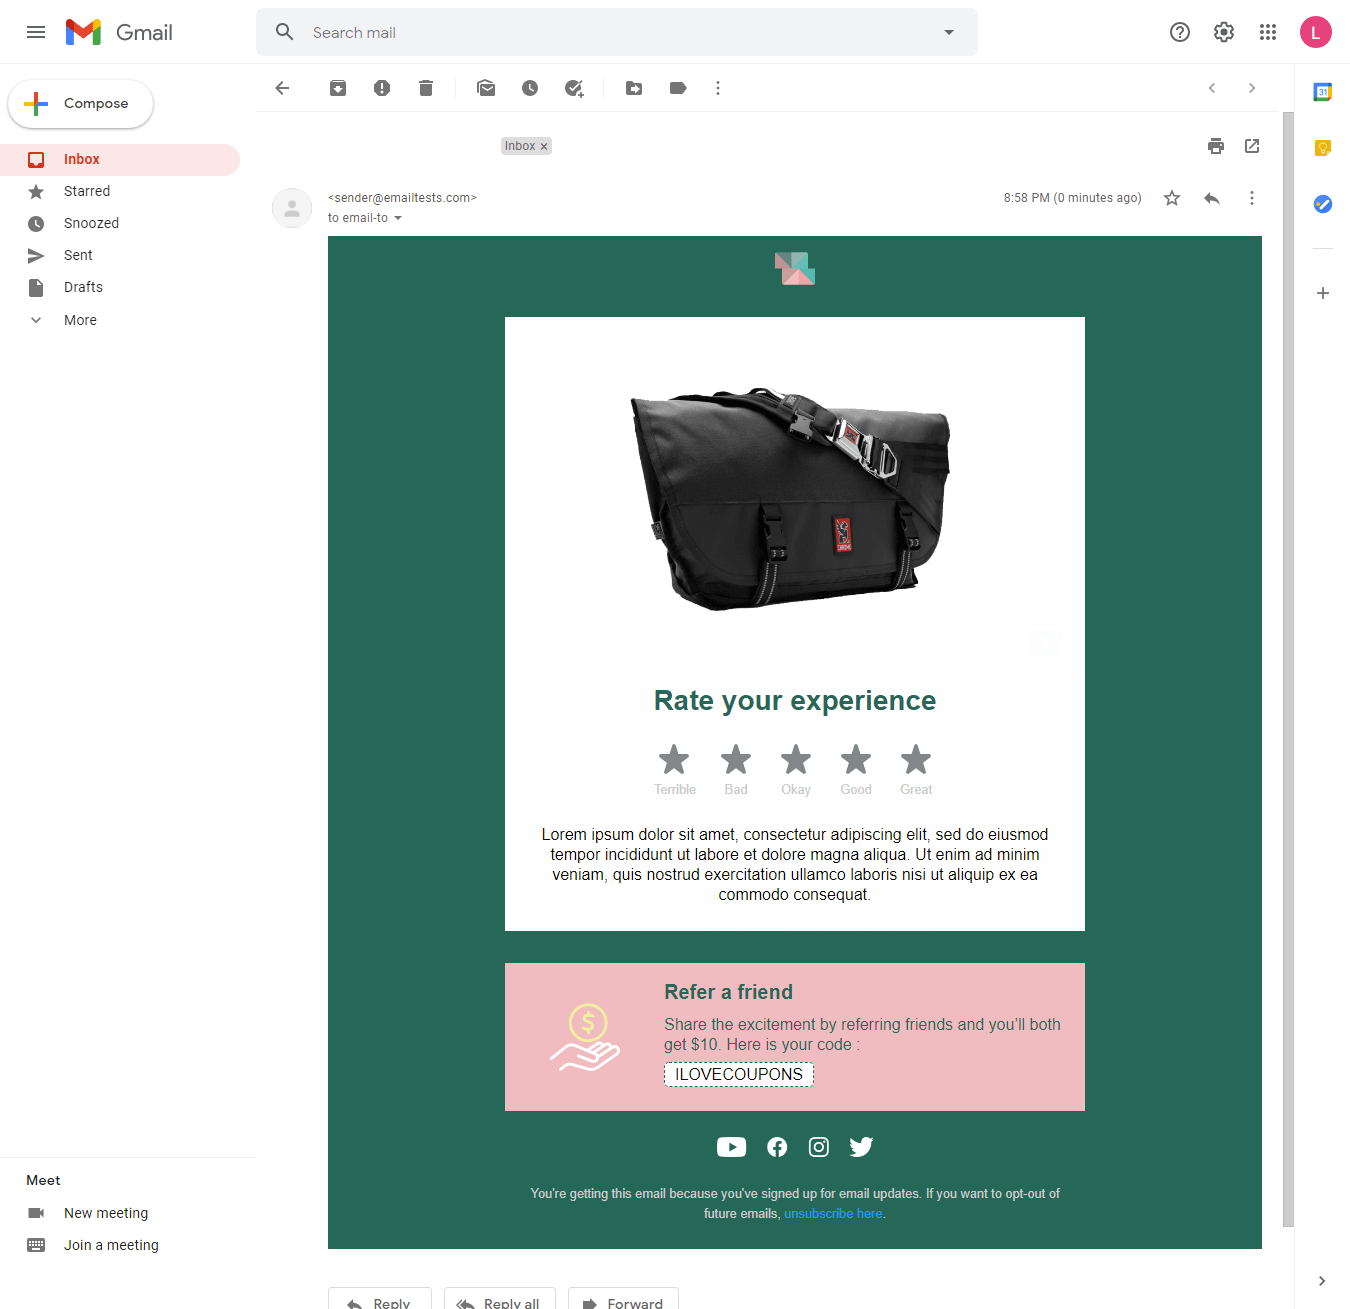 Screenshot of Squared review email display on Gmail